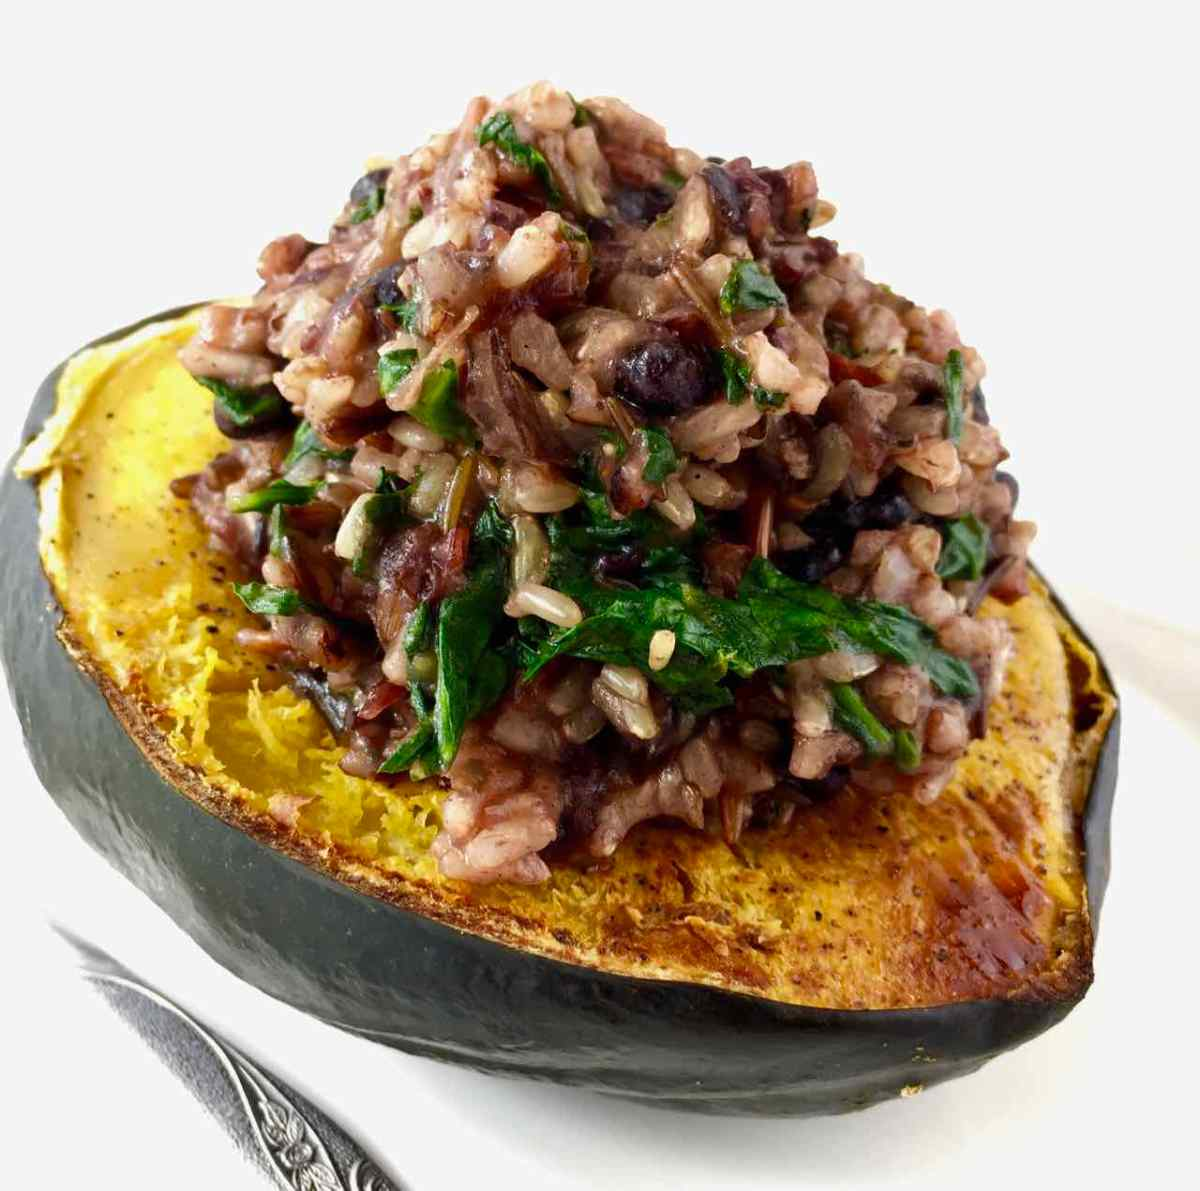 Garam Masala Baked Acorn Squash - Stuffed With Cranberry Rice